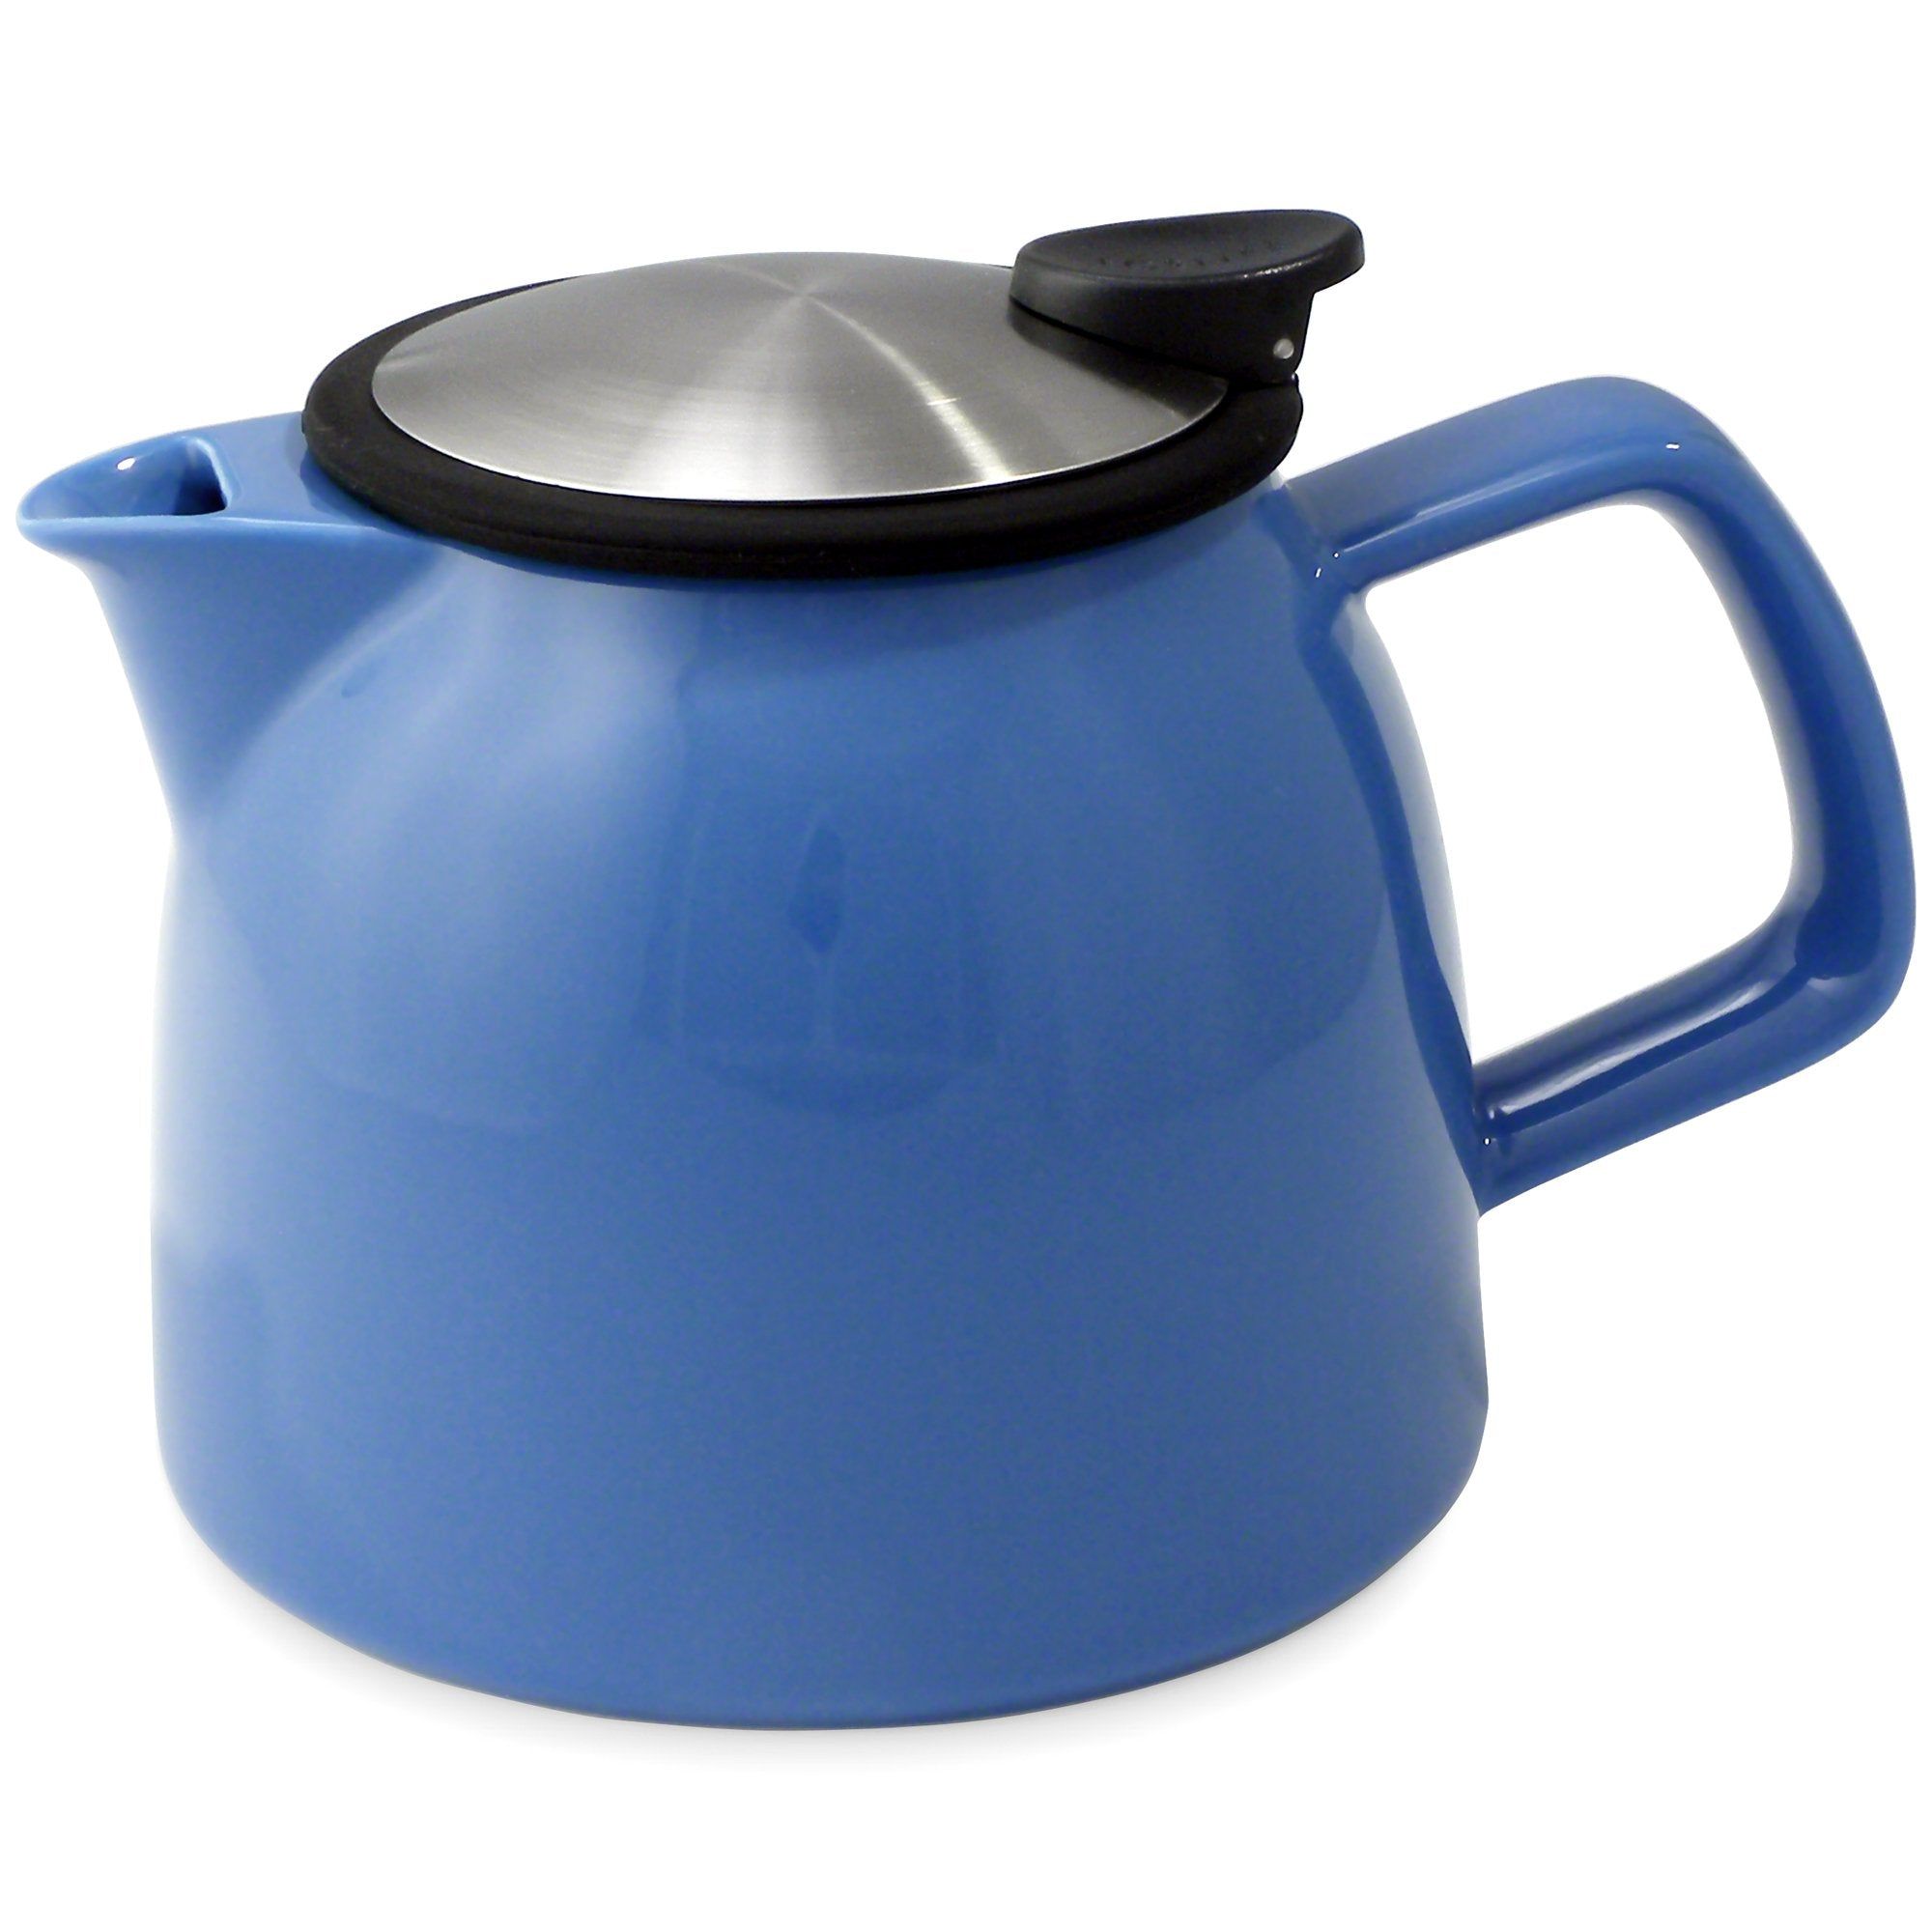 Tealula 26 oz bell-shaped blue teapot with square handle and black and silver detachable push-on-lid